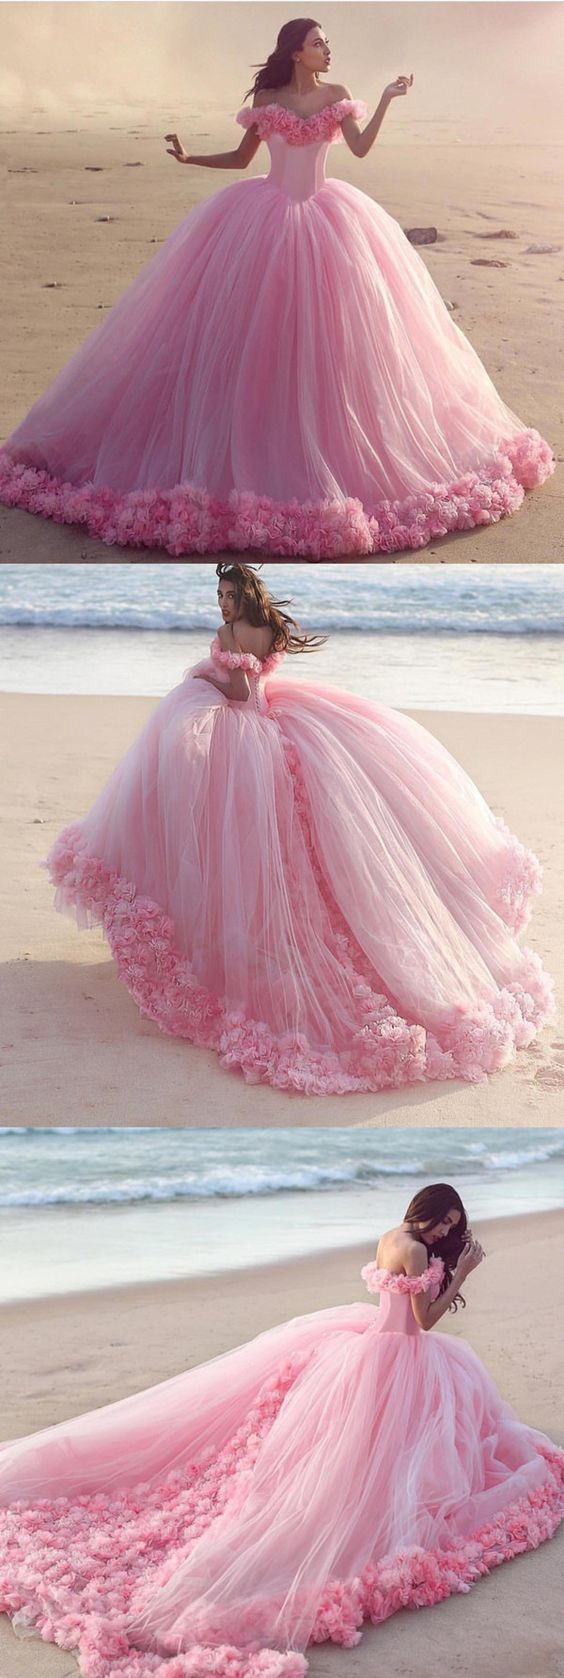 c866a9ab8024 Baby Pink Quinceanera Dresses 2018 Ball Gown Party Dress for 15 16 Years  Hand Make Flowers Sweetheart Quinceanera Dress Hot Sale Quinceanera Gowns